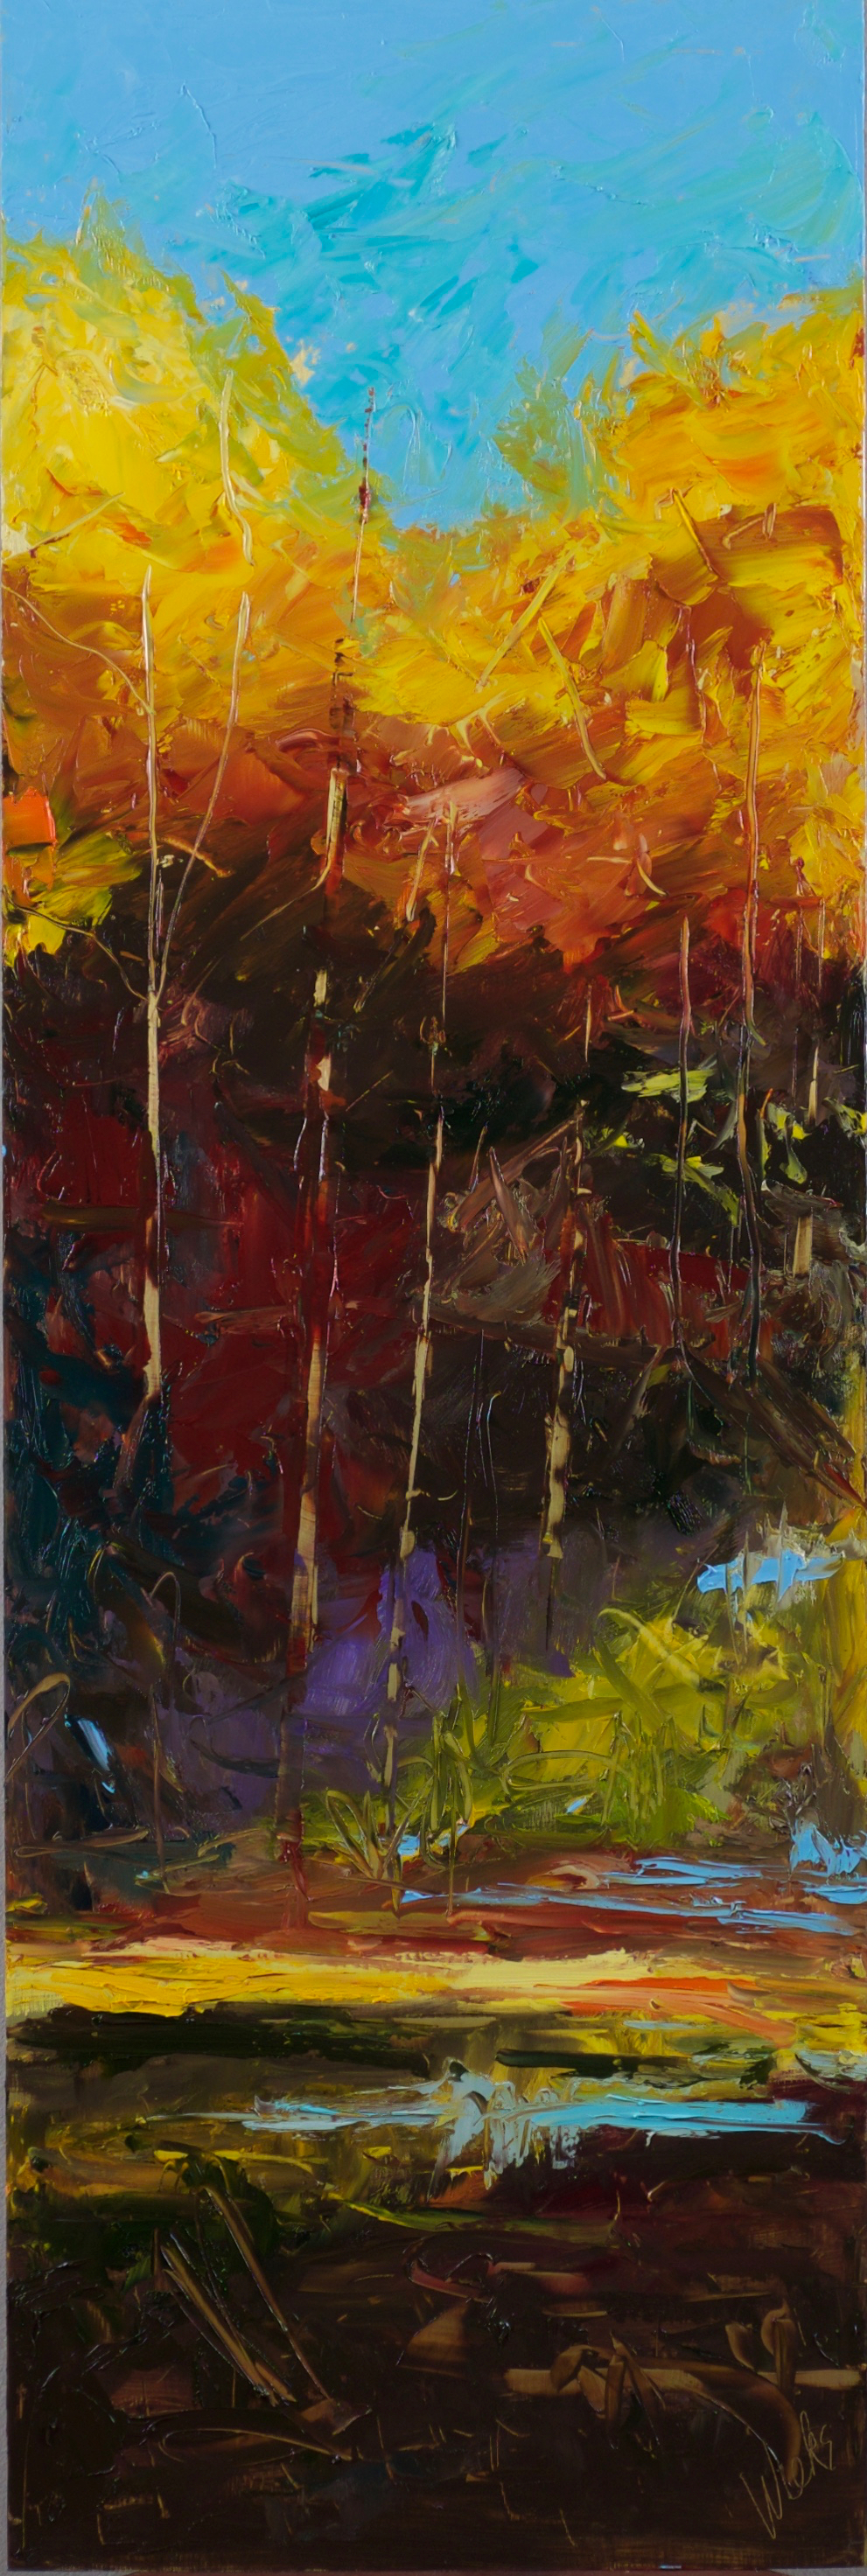 """""""Secrets of the Forest #2"""" - 36 x 12 inch"""